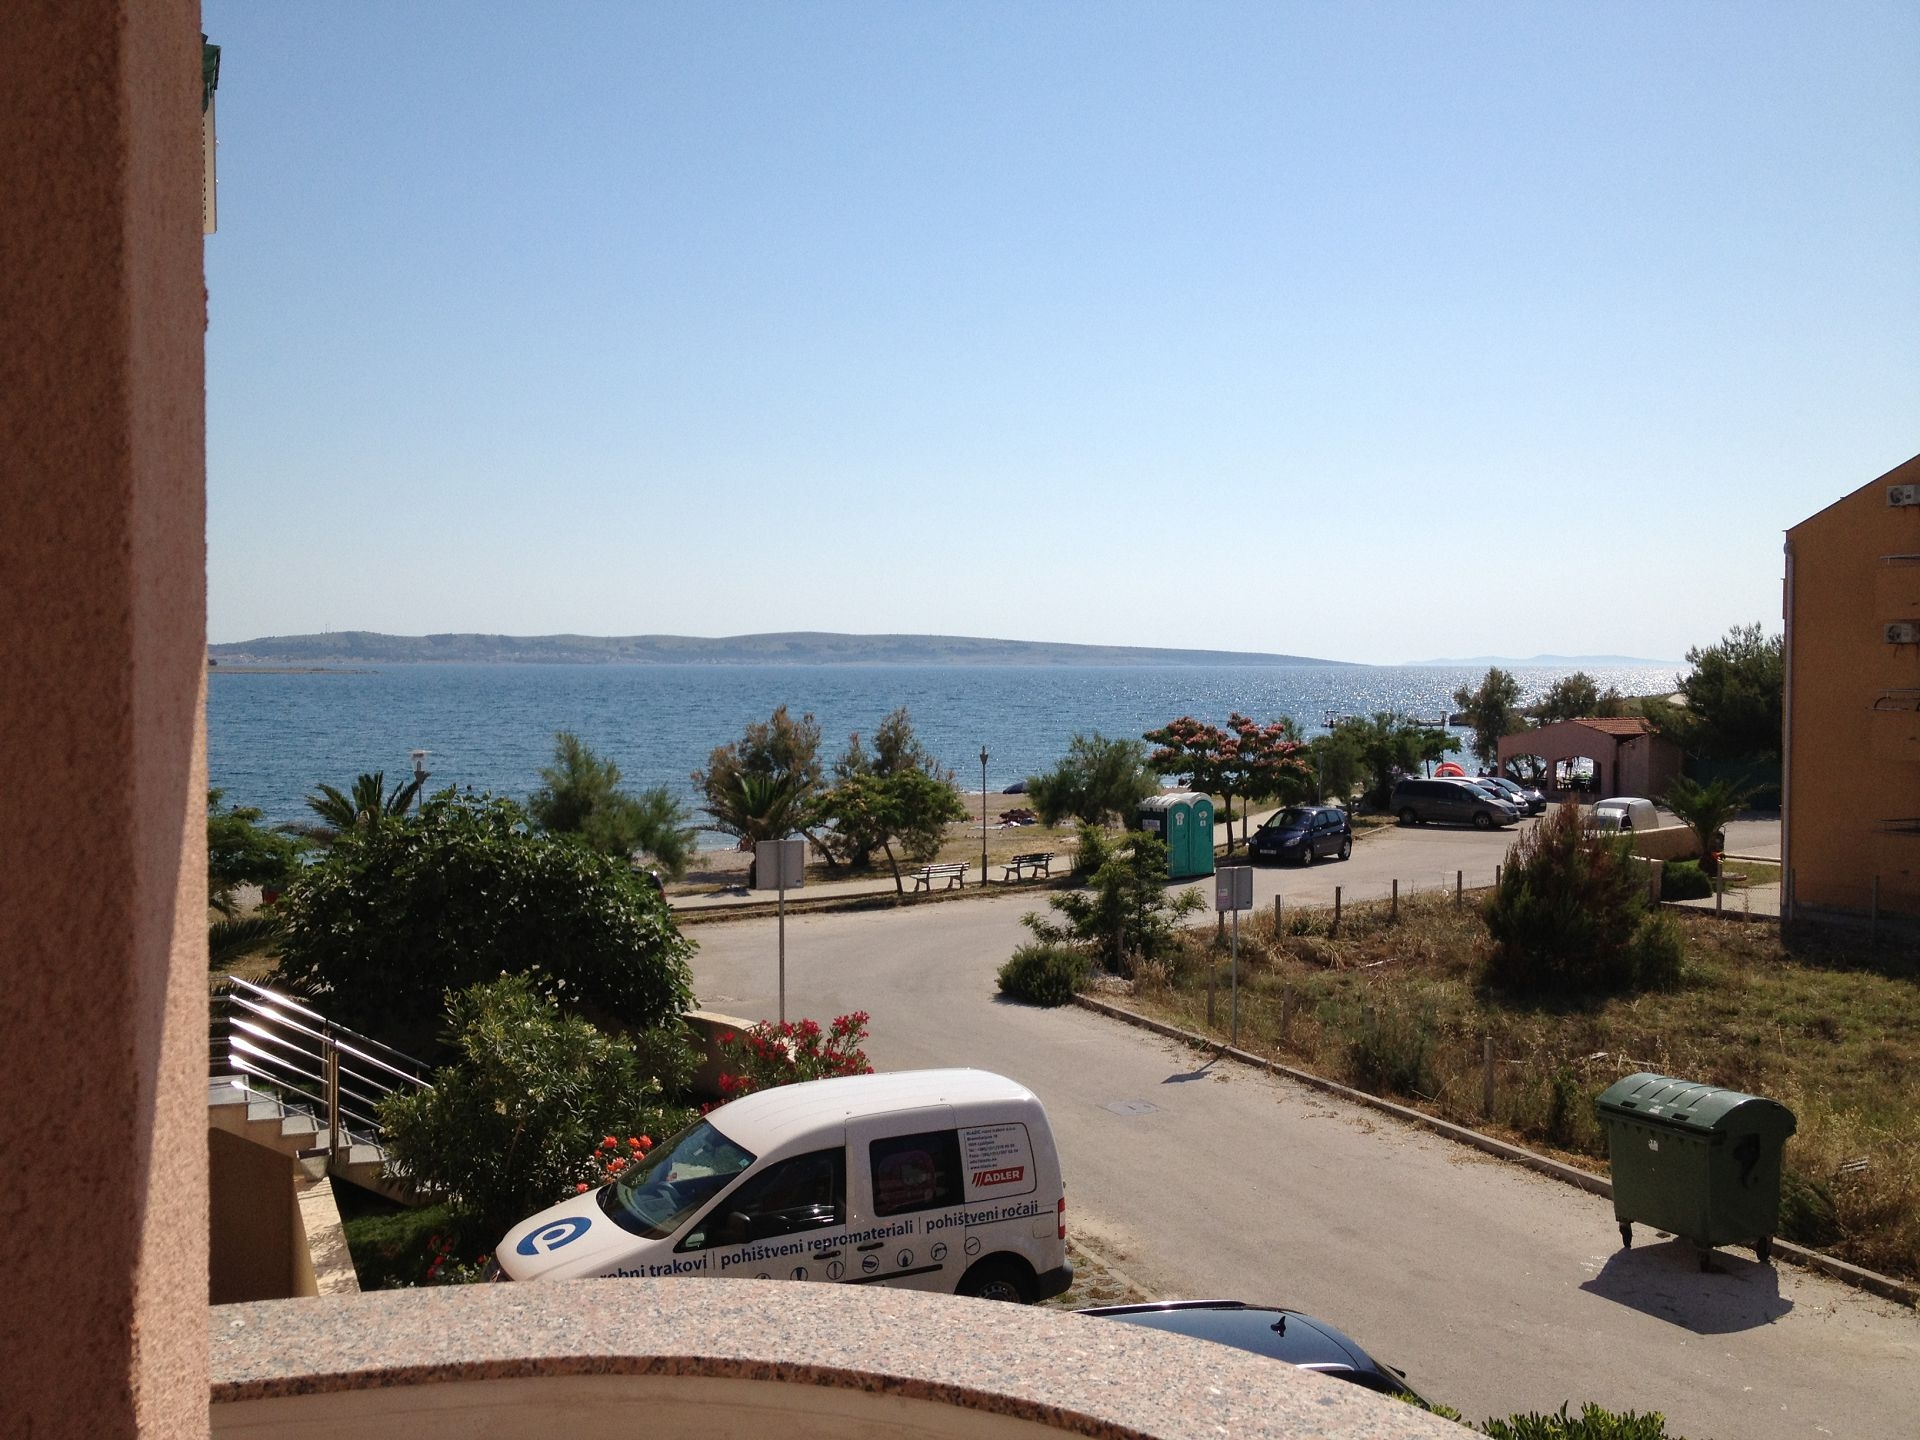 Apartments, Povljana, Island of Pag - Apartments  Sab - 40 m from beach: